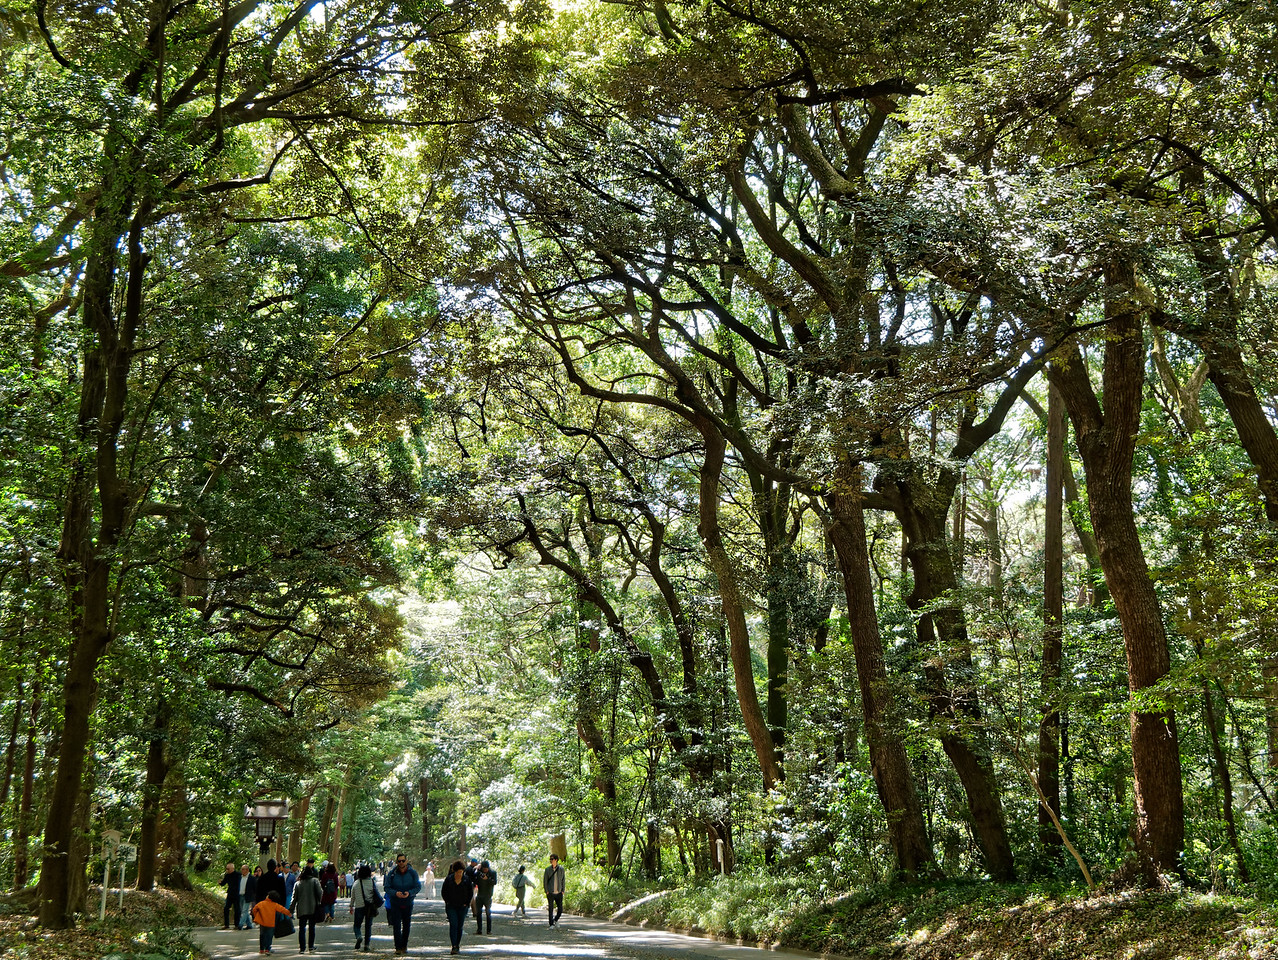 Three hundred and sixty-five species of trees were donated by people from all parts of Japan for the creation of the 170-acre park surrounding the shrine.